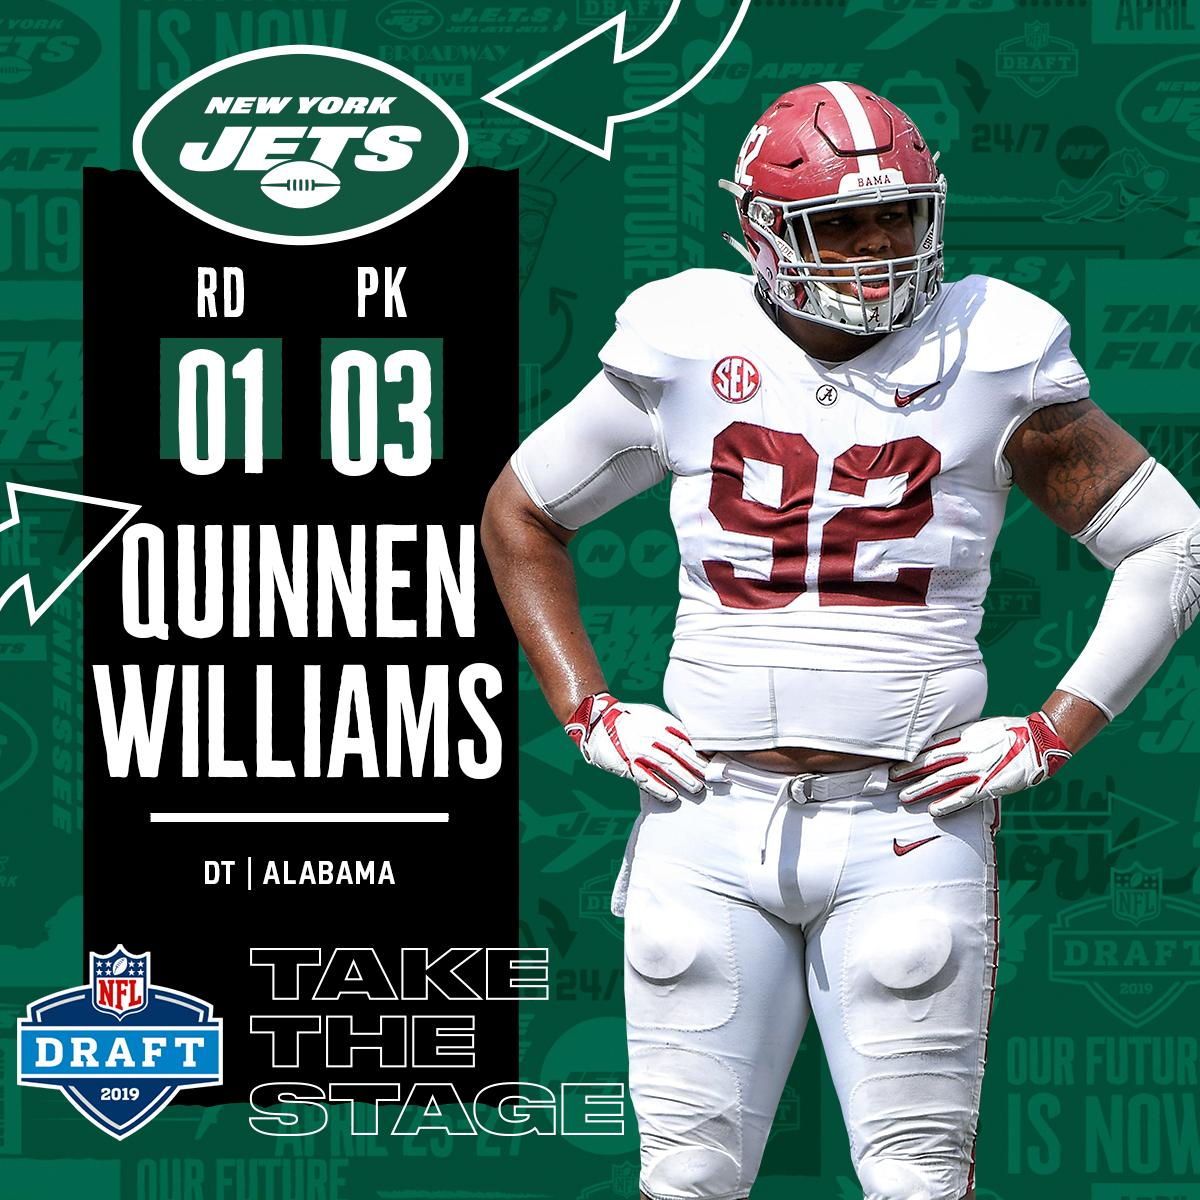 With the #3 overall pick in the 2019 @NFLDraft, the @nyjets select DT @QuinnenWilliams! #NFLDraft (by @Bose)